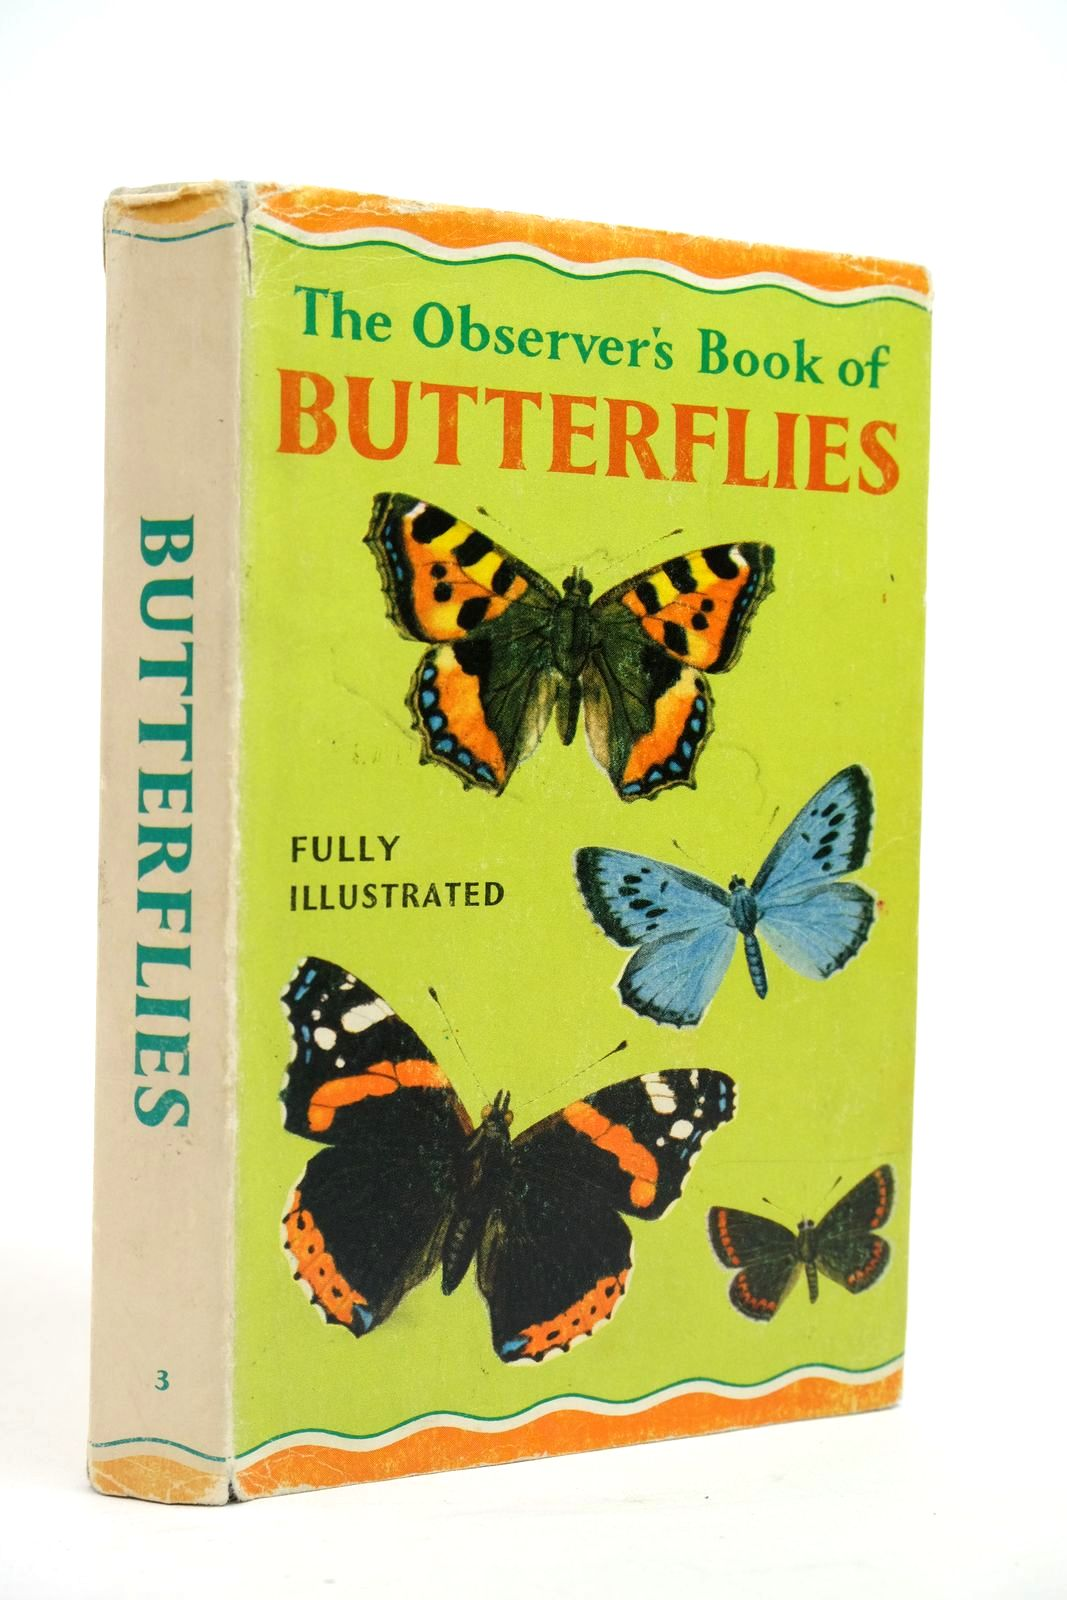 Photo of THE OBSERVER'S BOOK OF BUTTERFLIES written by Stokoe, W.J. published by Frederick Warne & Co Ltd. (STOCK CODE: 2134676)  for sale by Stella & Rose's Books